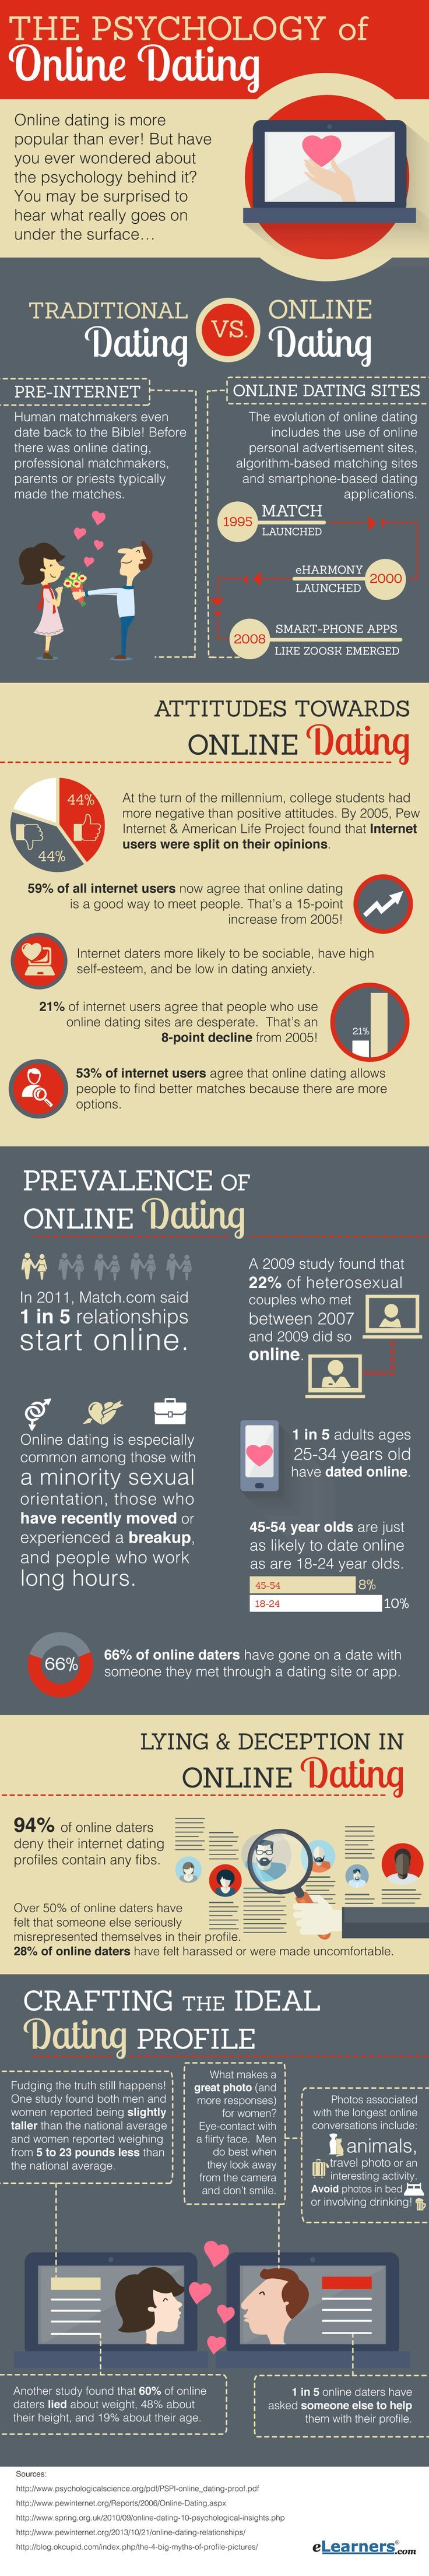 12 online dating safety tips and rules for women